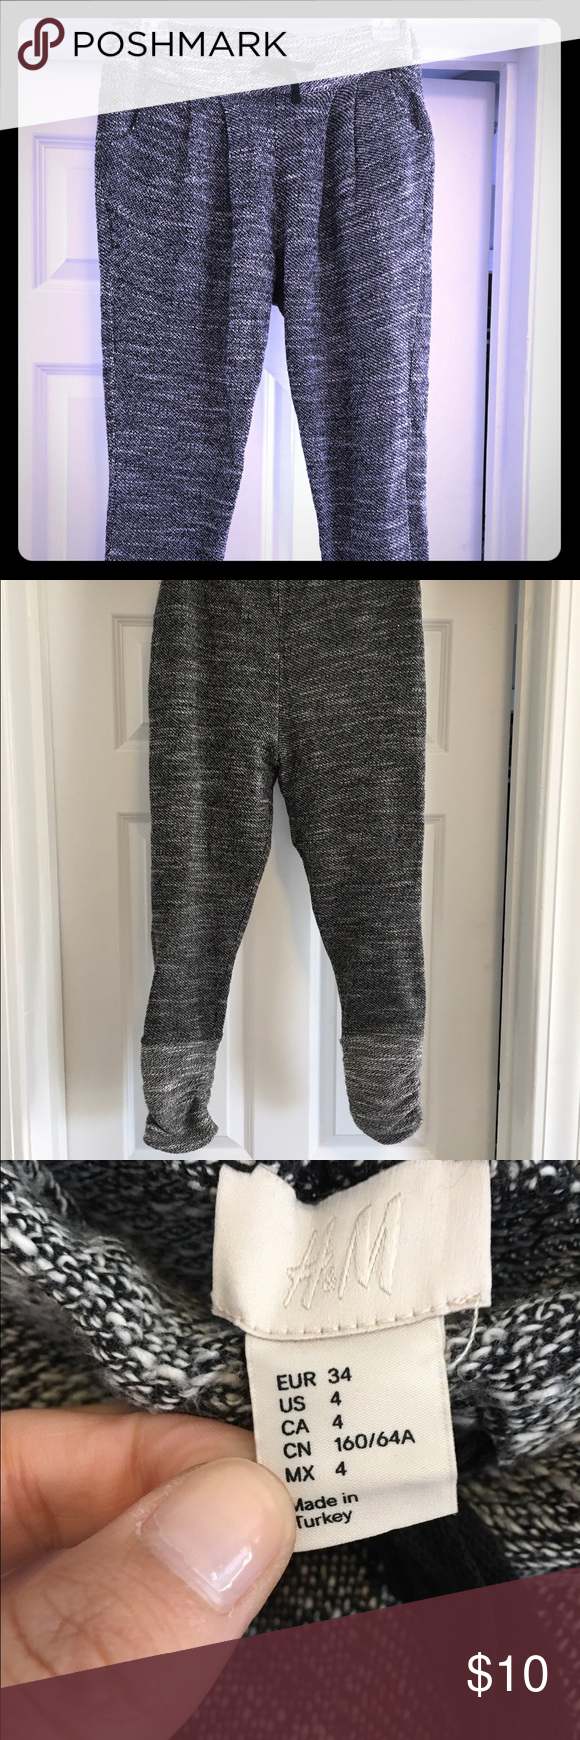 H&M harem pants with pockets. Size 4. These pants just don't fit anymore. Lightly worn and always dry cleaned. The pockets make them super comfortable. The scrunched lighter colored bottoms make a statement. Fits tight through the legs. H&M Pants Leggings